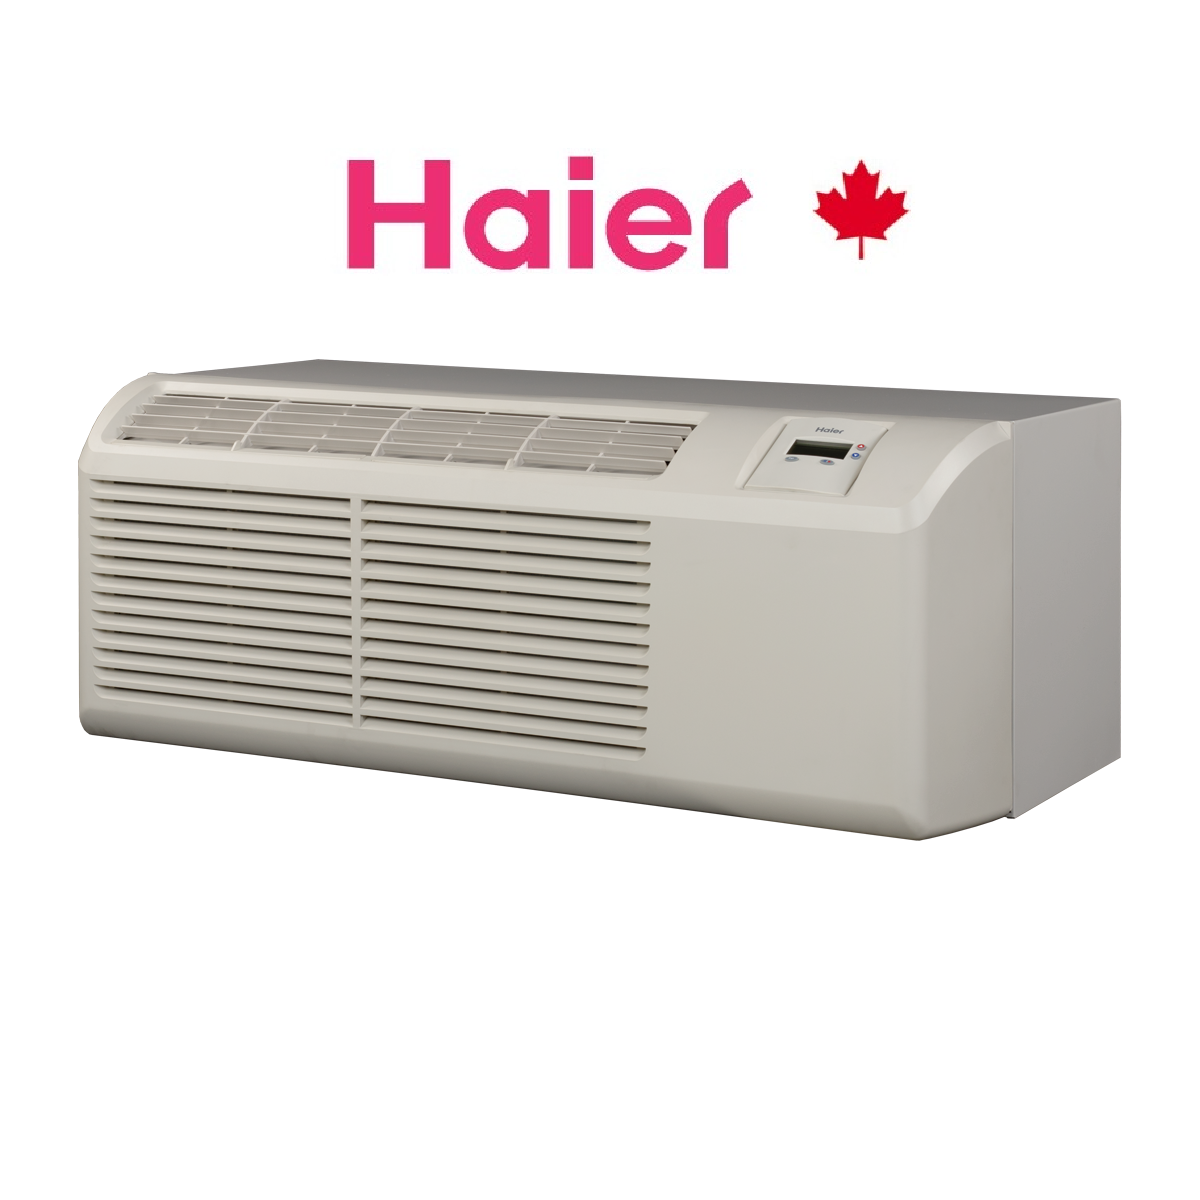 Haier Ptac Units Pthh0901uac Heat Pump Cooling And Heating